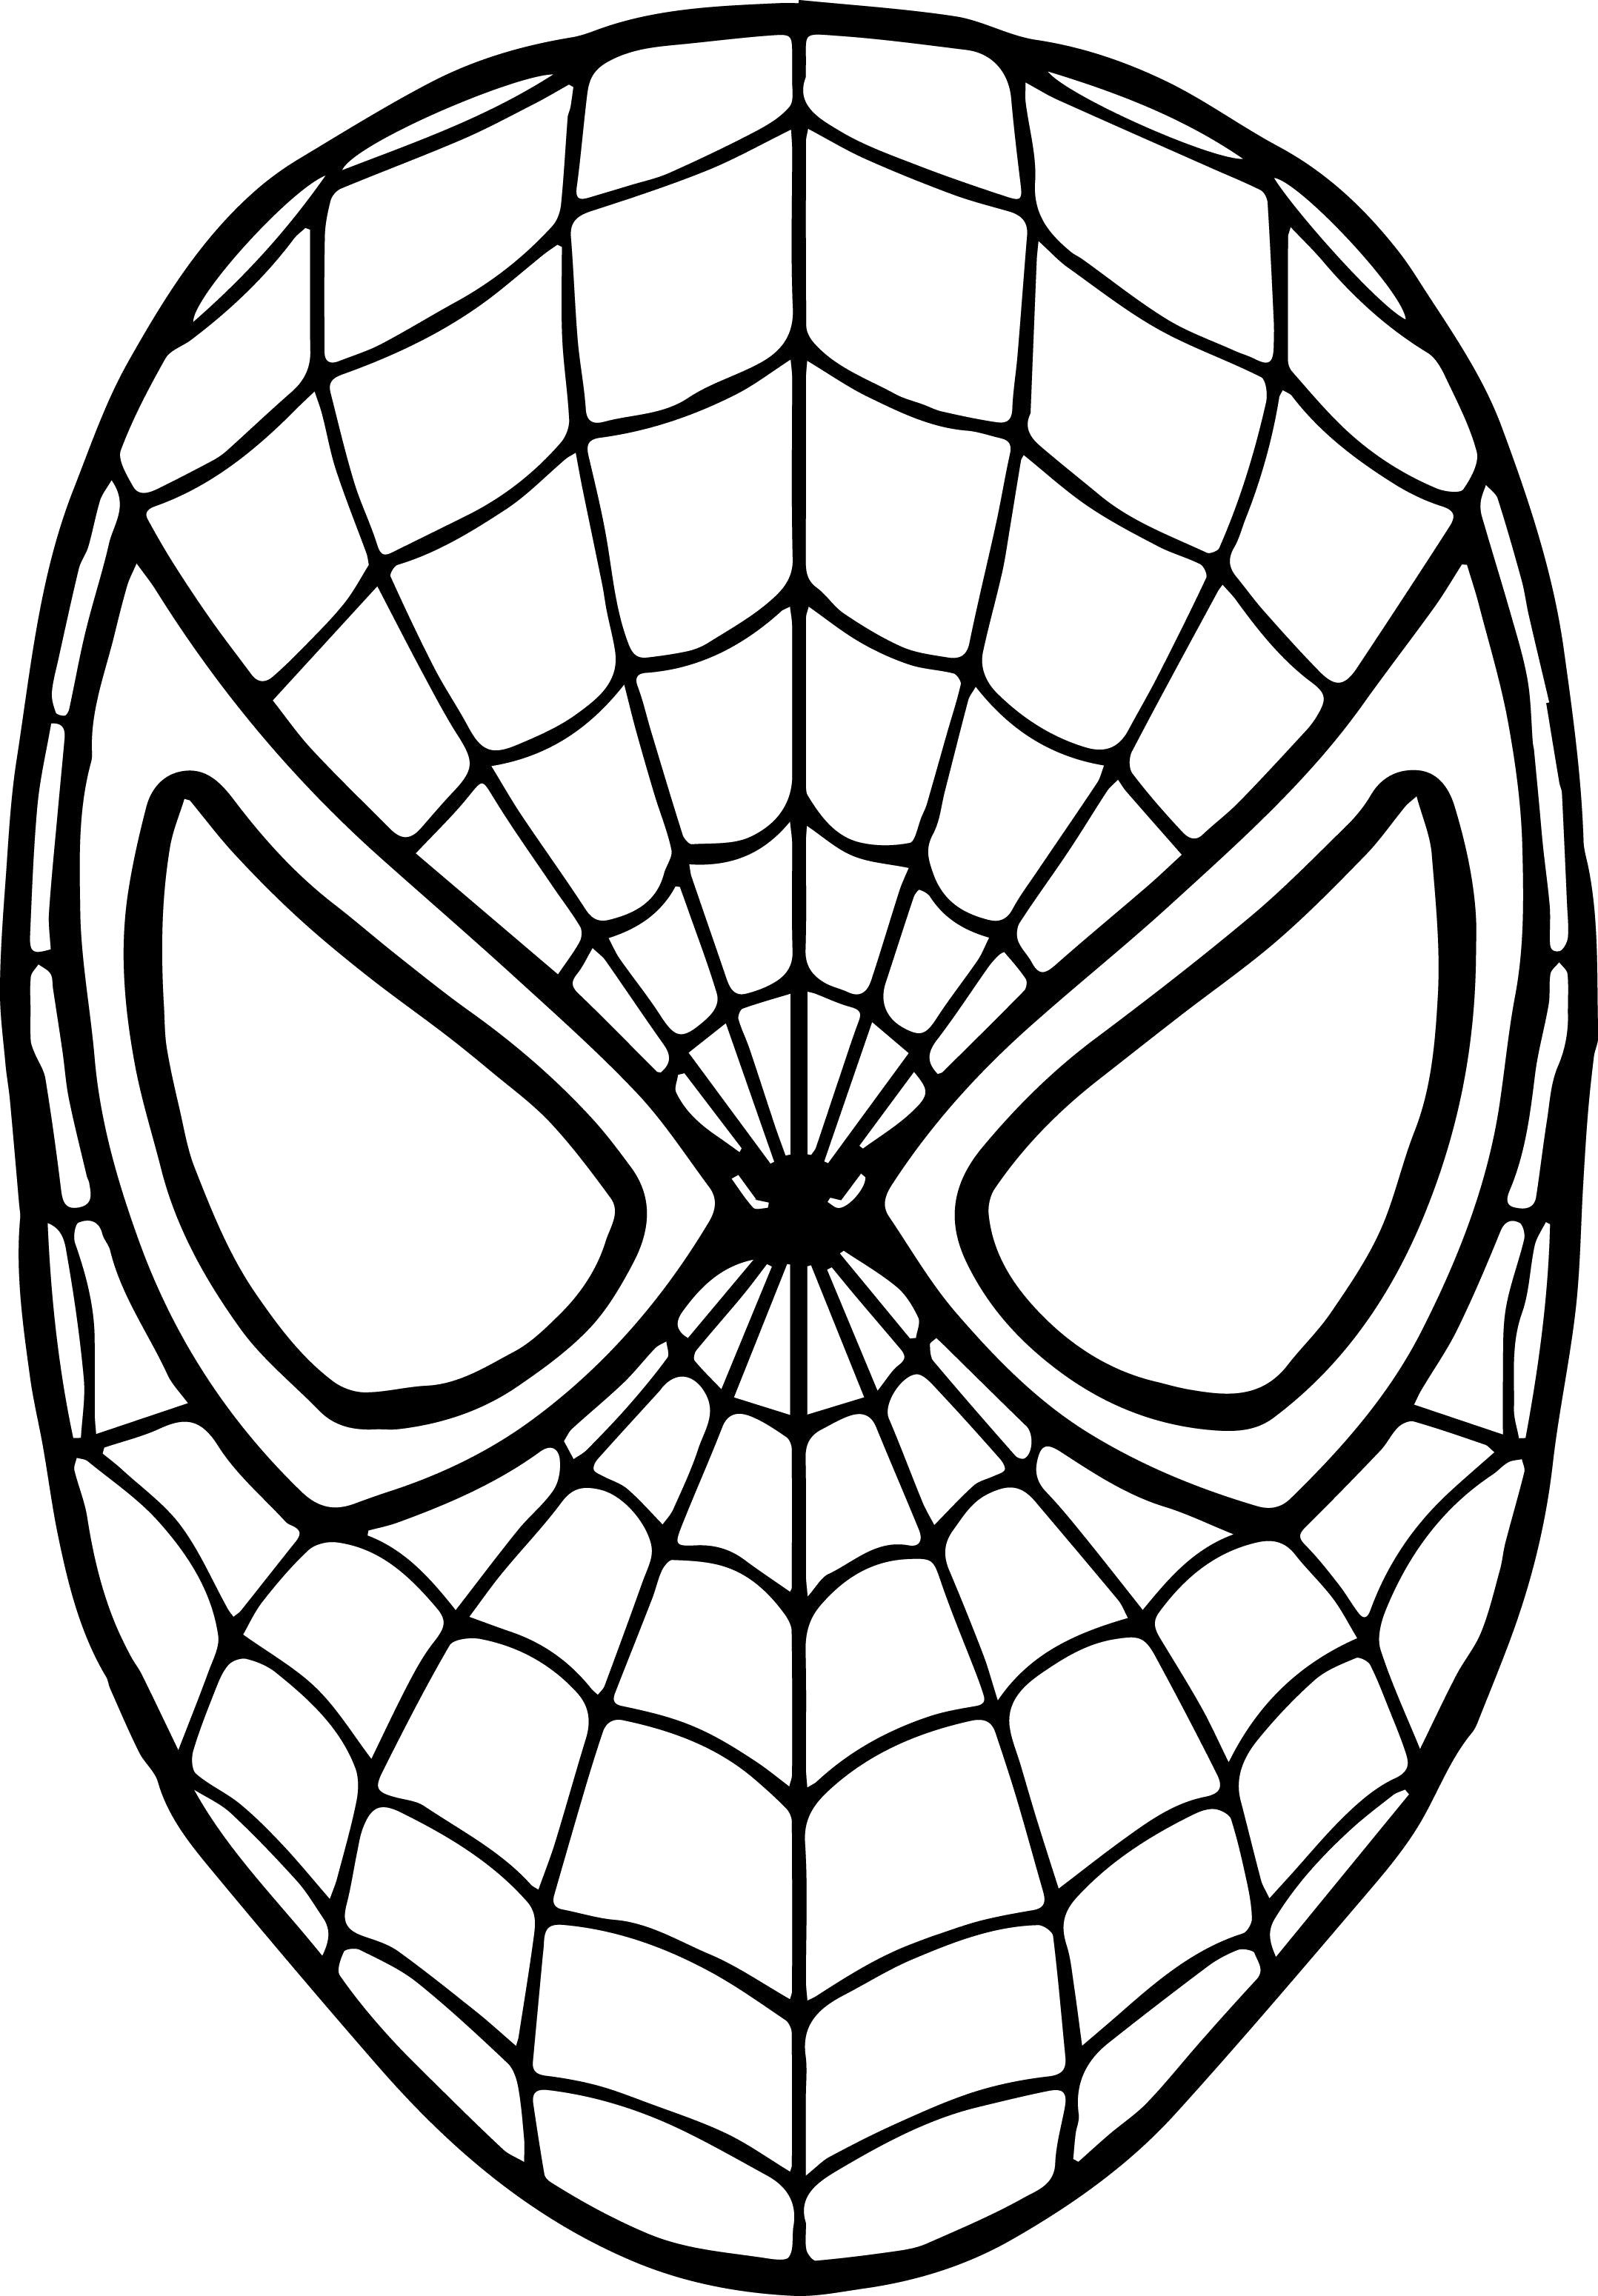 Spiderman Mask Coloring Page Coloring Spiderman Coloring